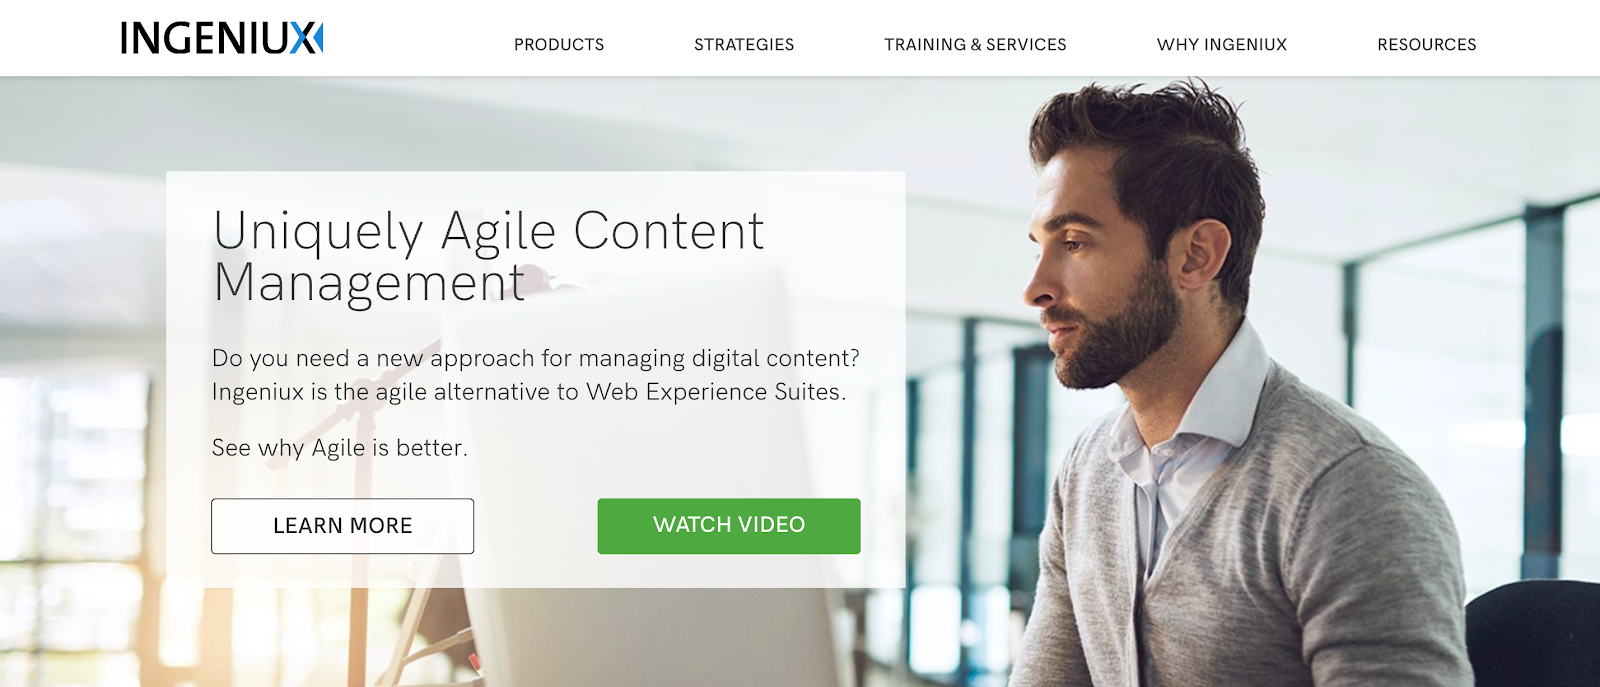 Ingeniux CMS is one of the oldest Agile content experiences around, founded in 1999